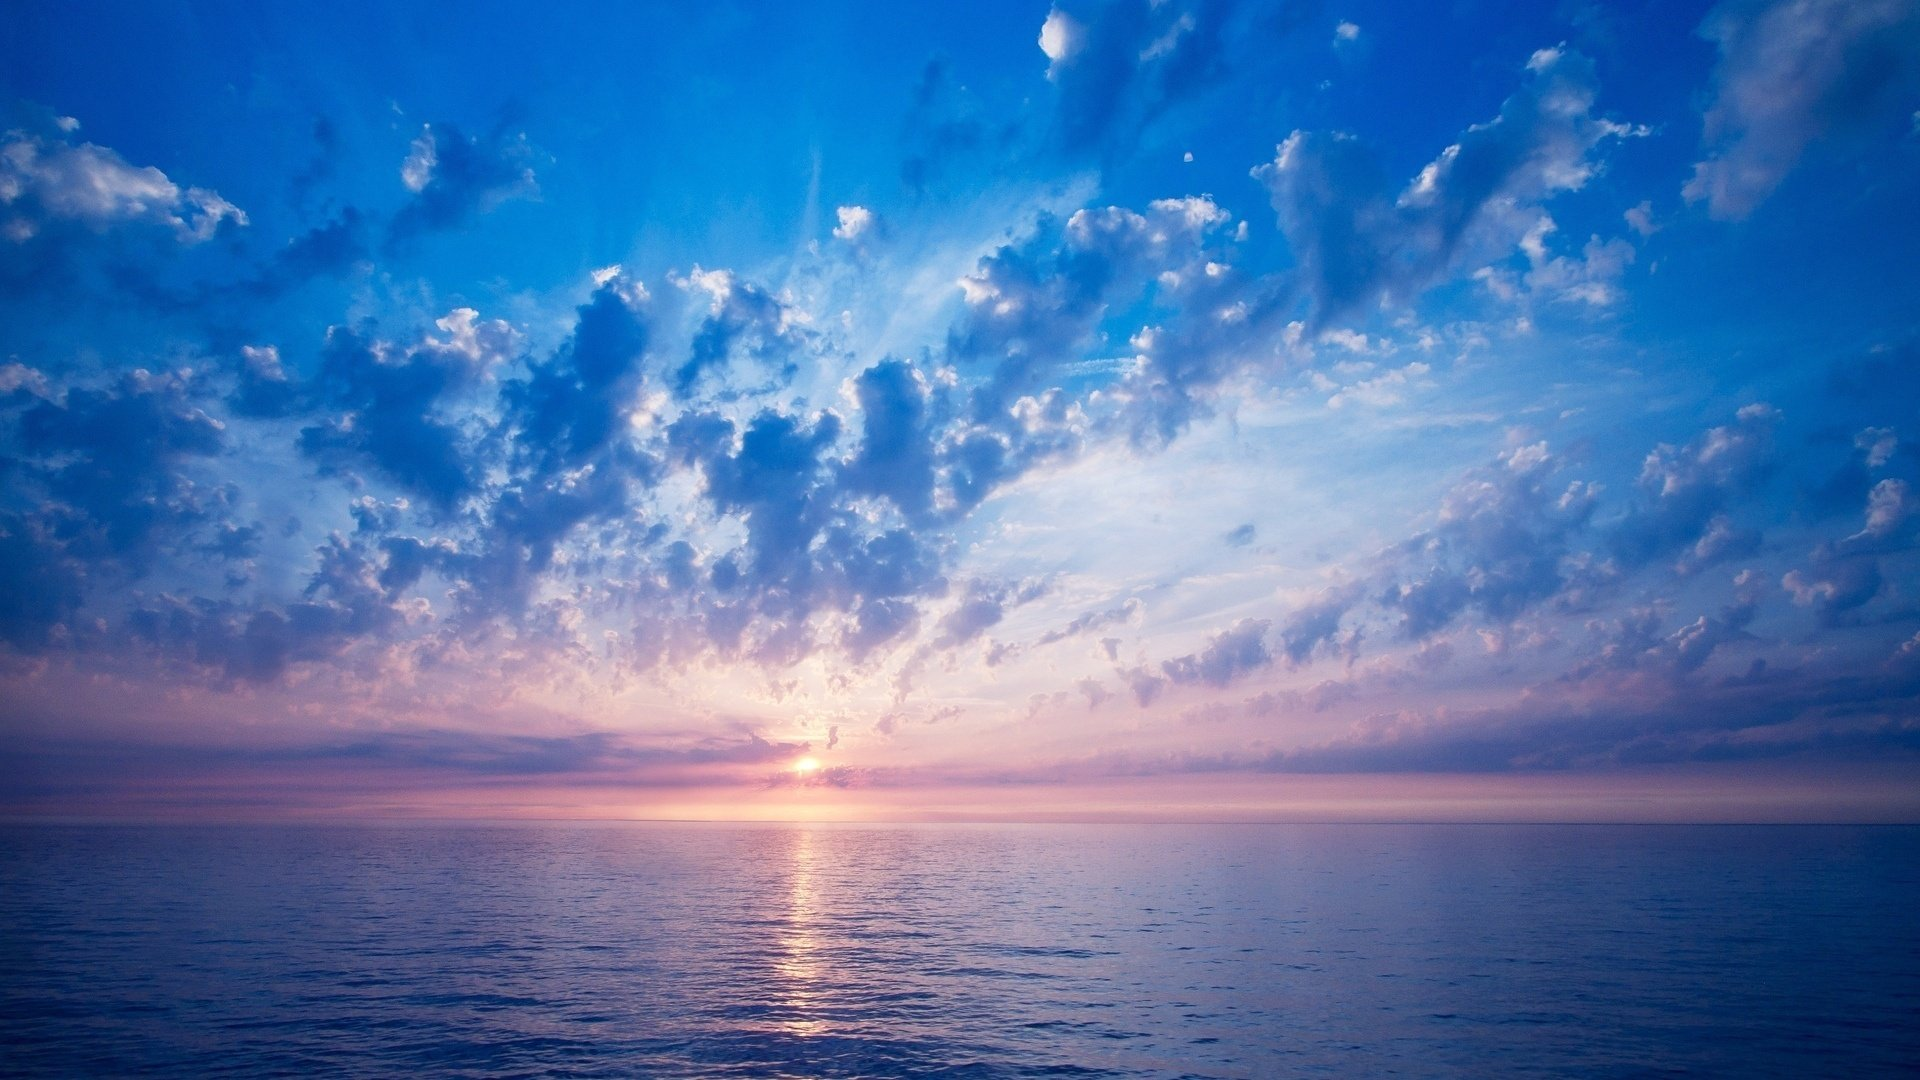 Beautiful Sky Backgrounds Images amp Pictures   Becuo 1920x1080